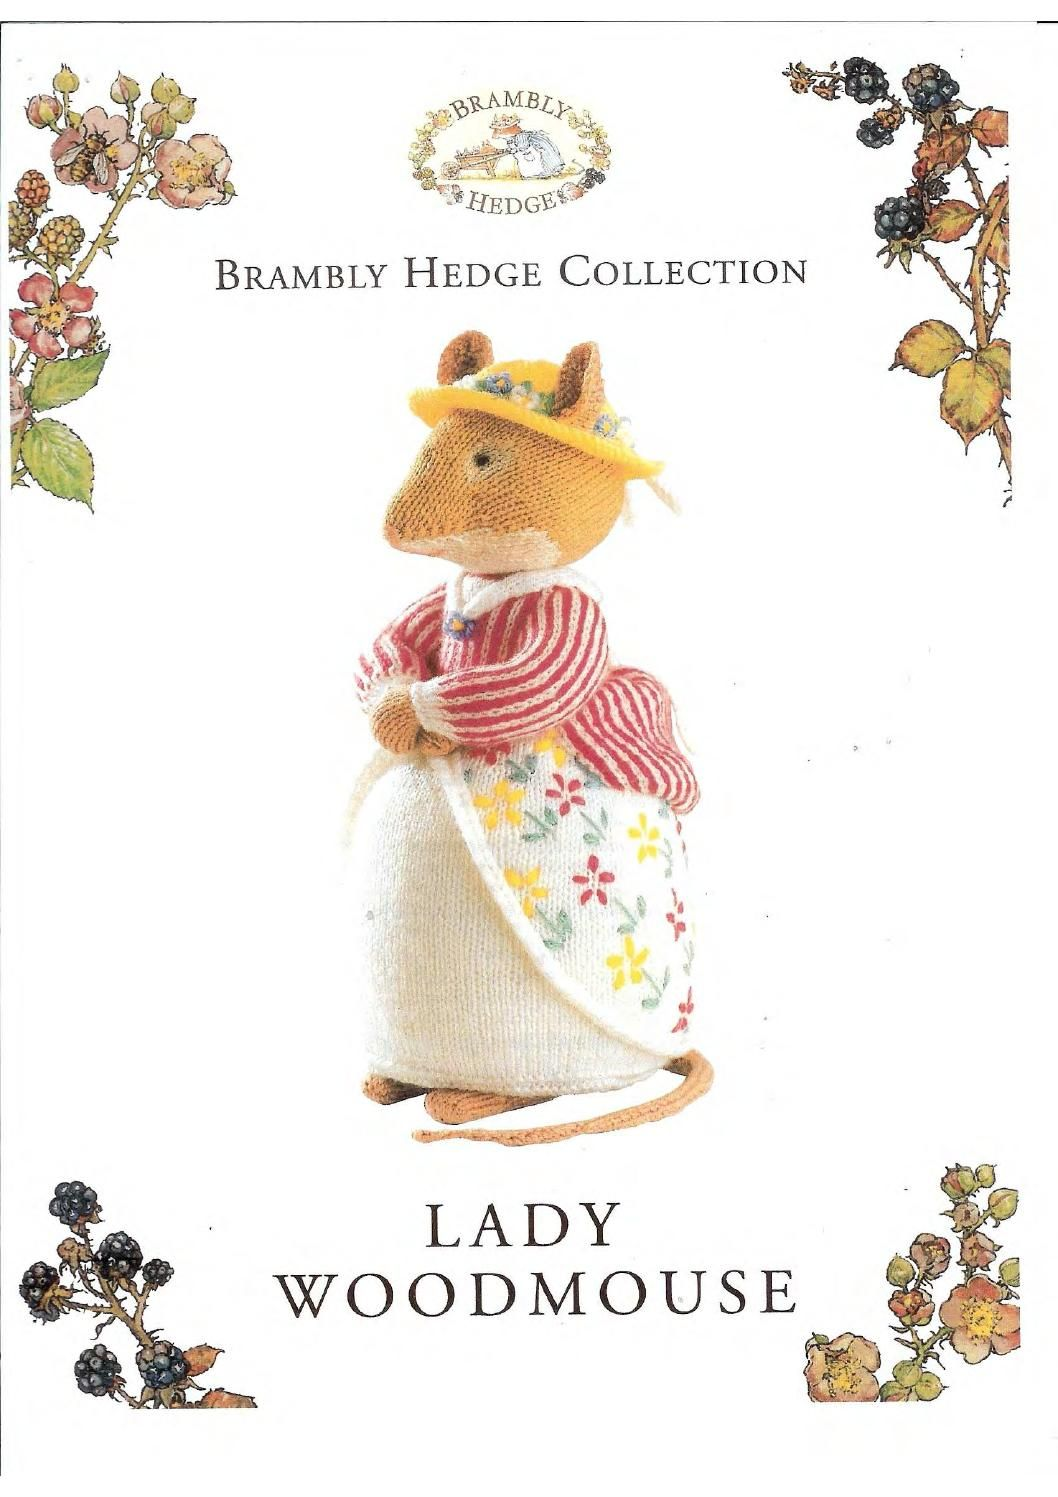 Knit brambly hedge collection lady woodmouse by FREE Magazine Inside ...